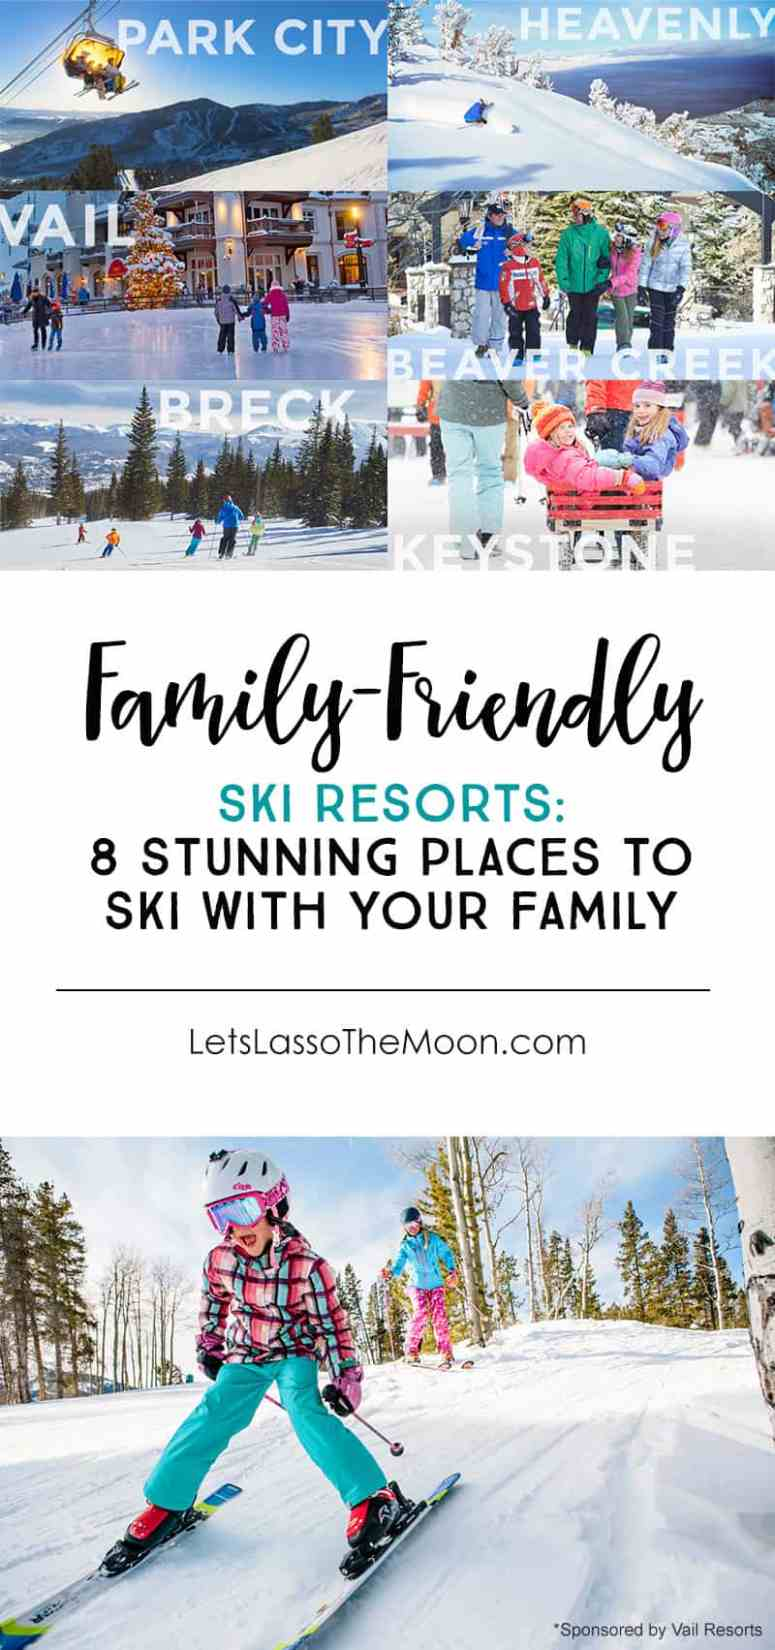 8 Stunning Ski Resorts Trips That Are Family-Friendly *Saving these idea for planning our next vacation